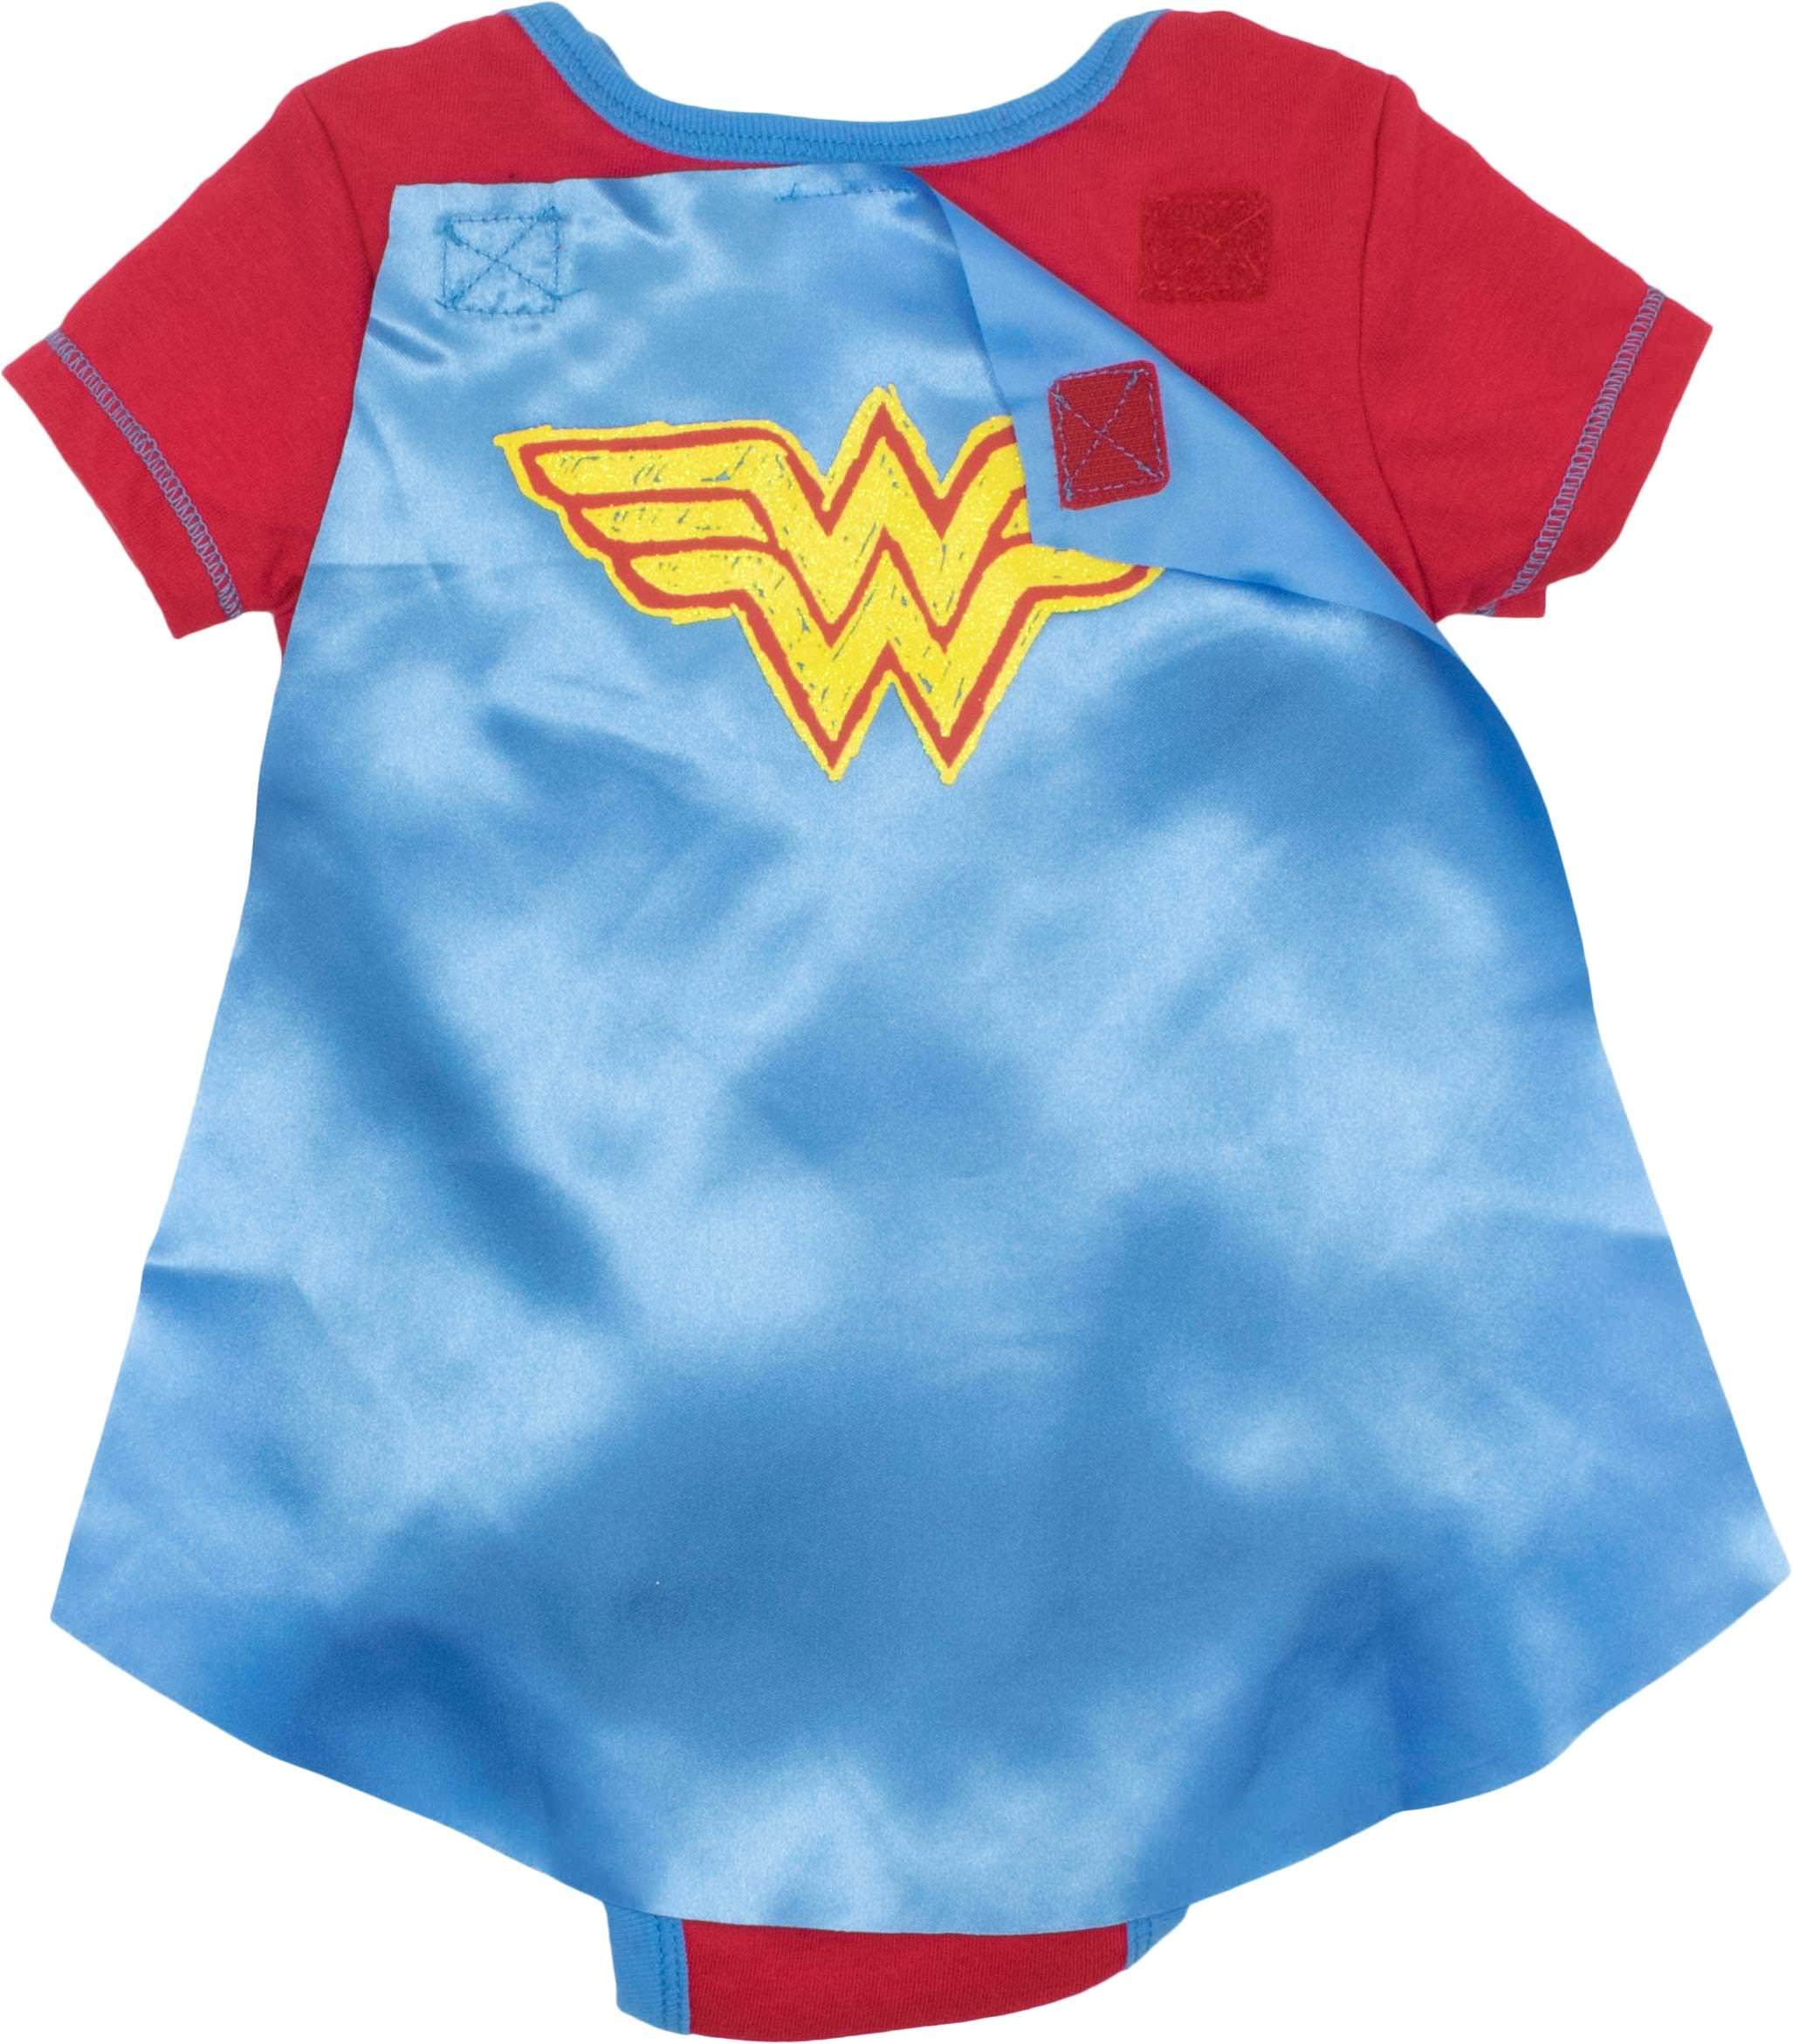 2dc6902a9 Warner Bros. - DC Comics Wonder Woman Baby Girls' Bodysuit and Cape, Red  (12 Months) - Walmart.com